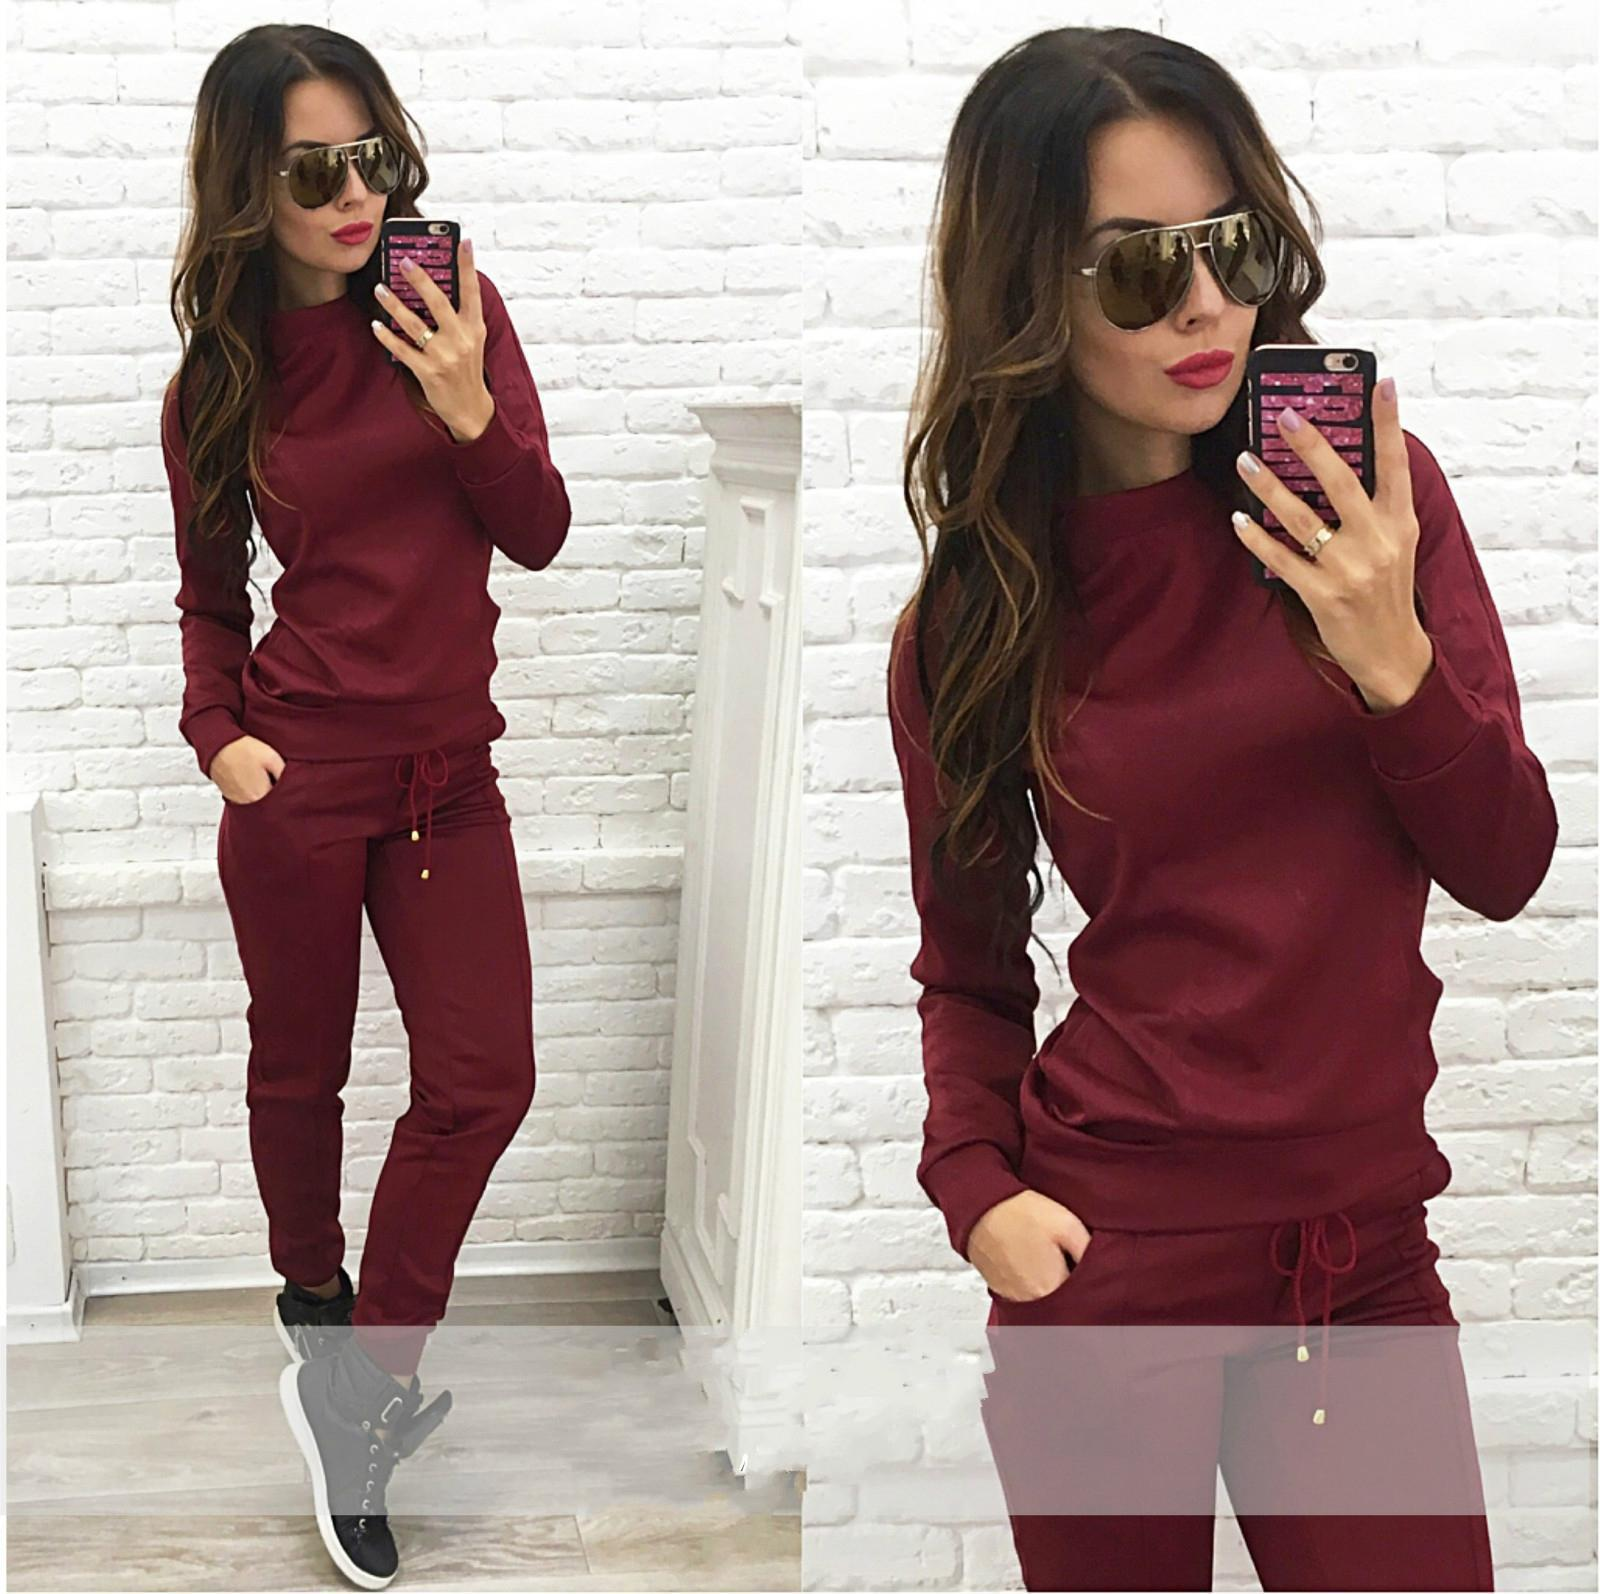 New Arrive Women Tracksuit 2 Piece Set Top And Pants Women's Sweatshirt Set Sport Fashion Casual Cotton Long Sleeve Sets XM588